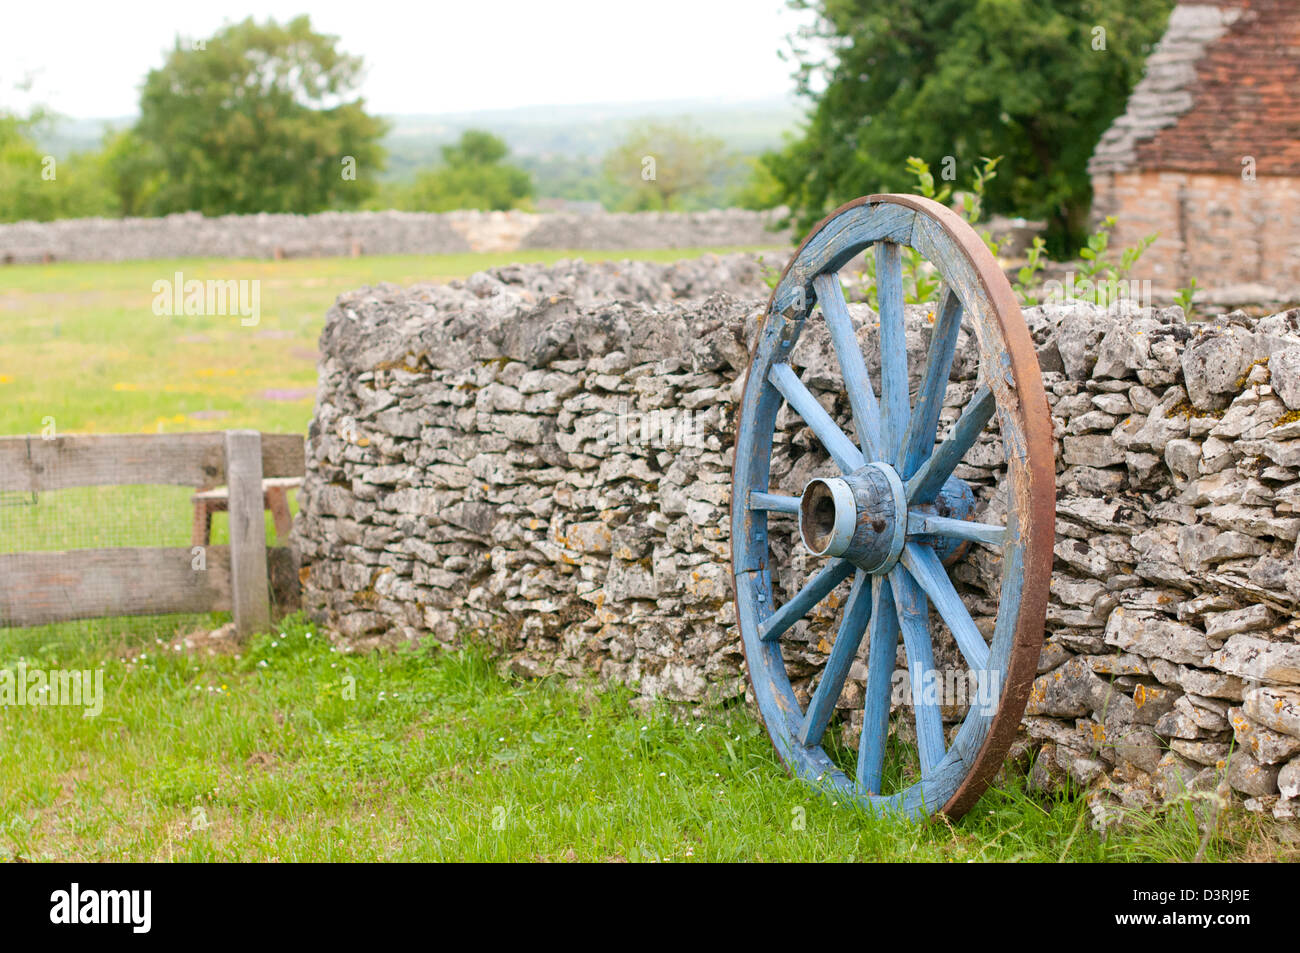 Old cartwheel resting on stone wall - Stock Image